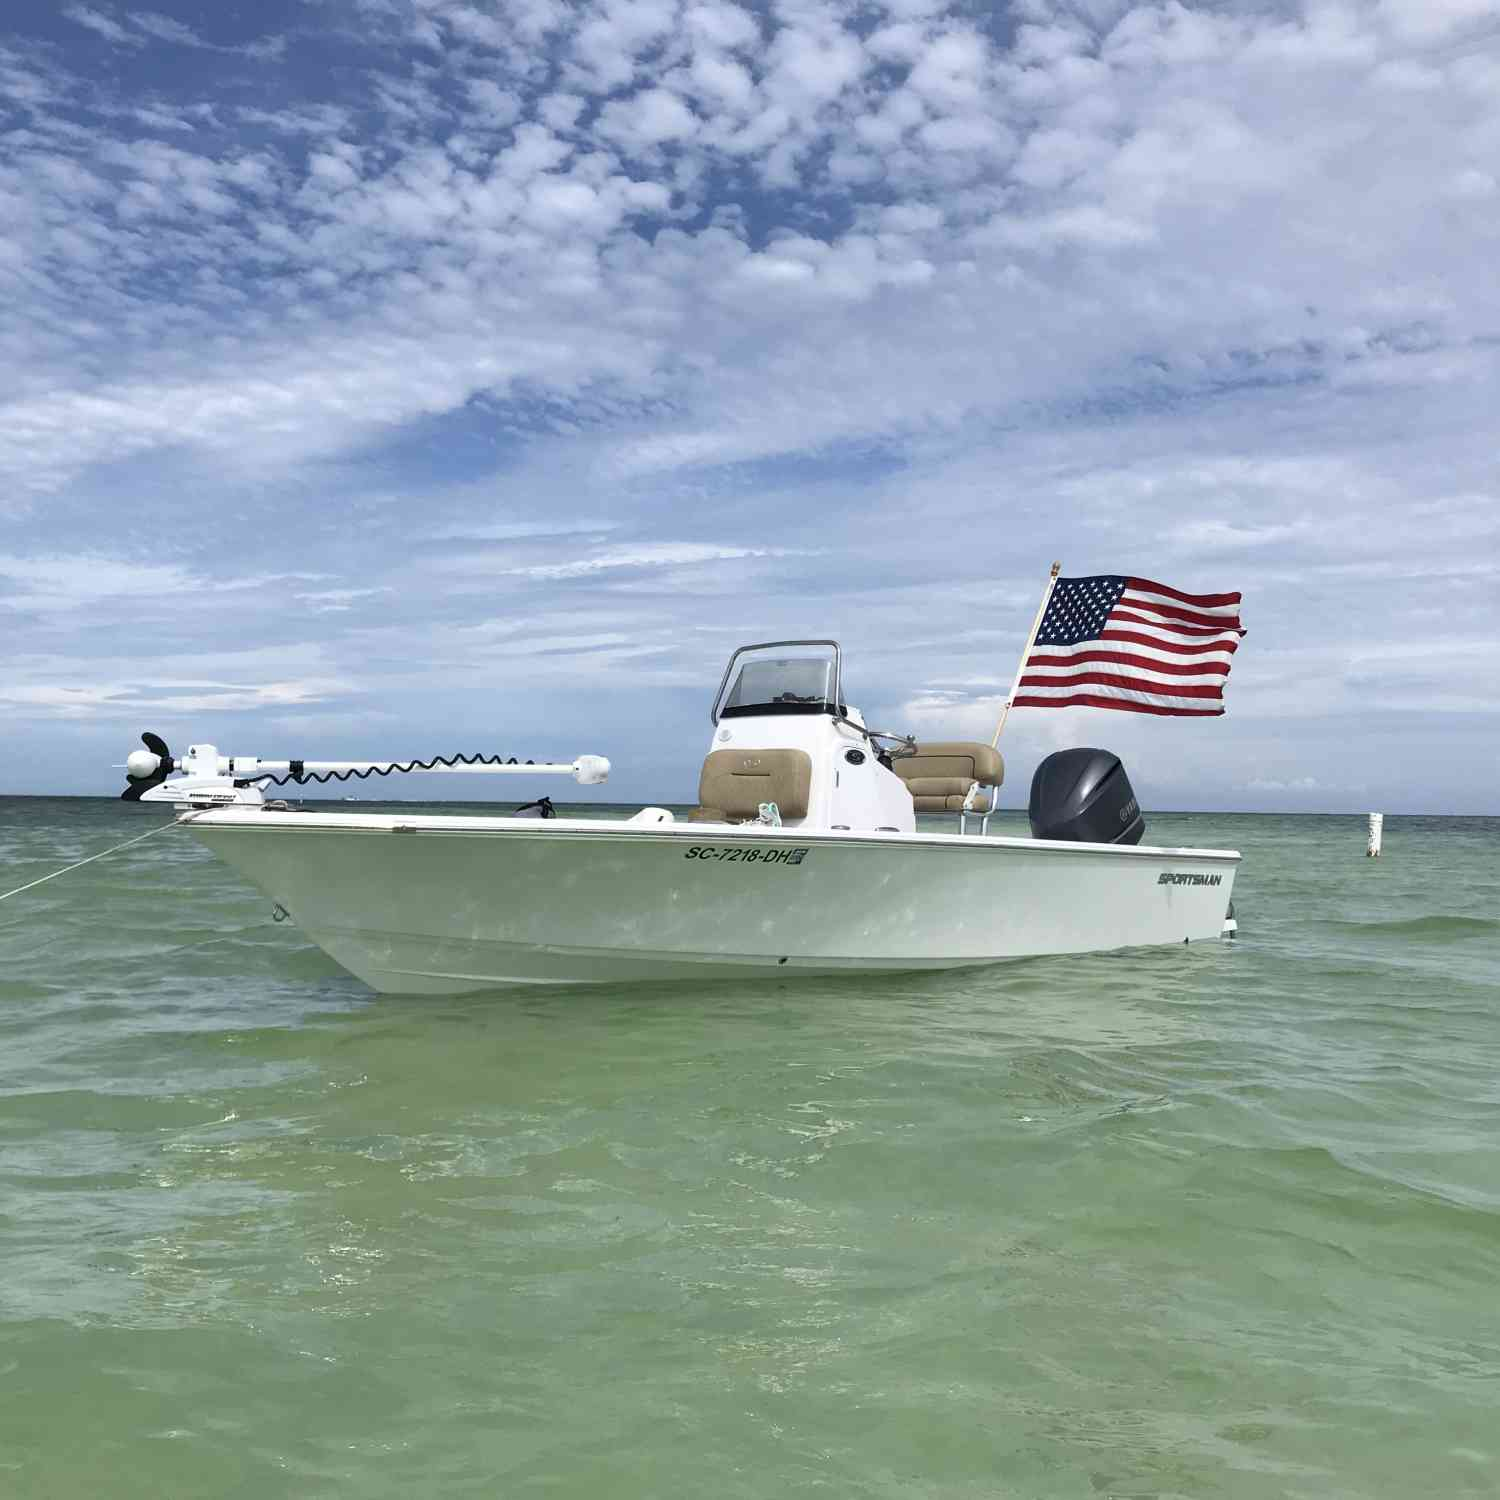 Title: 227 at the Islamorada sandbar - On board their Sportsman Masters 227 Bay Boat - Location: Islamorada Florida. Participating in the Photo Contest #SportsmanJune2018